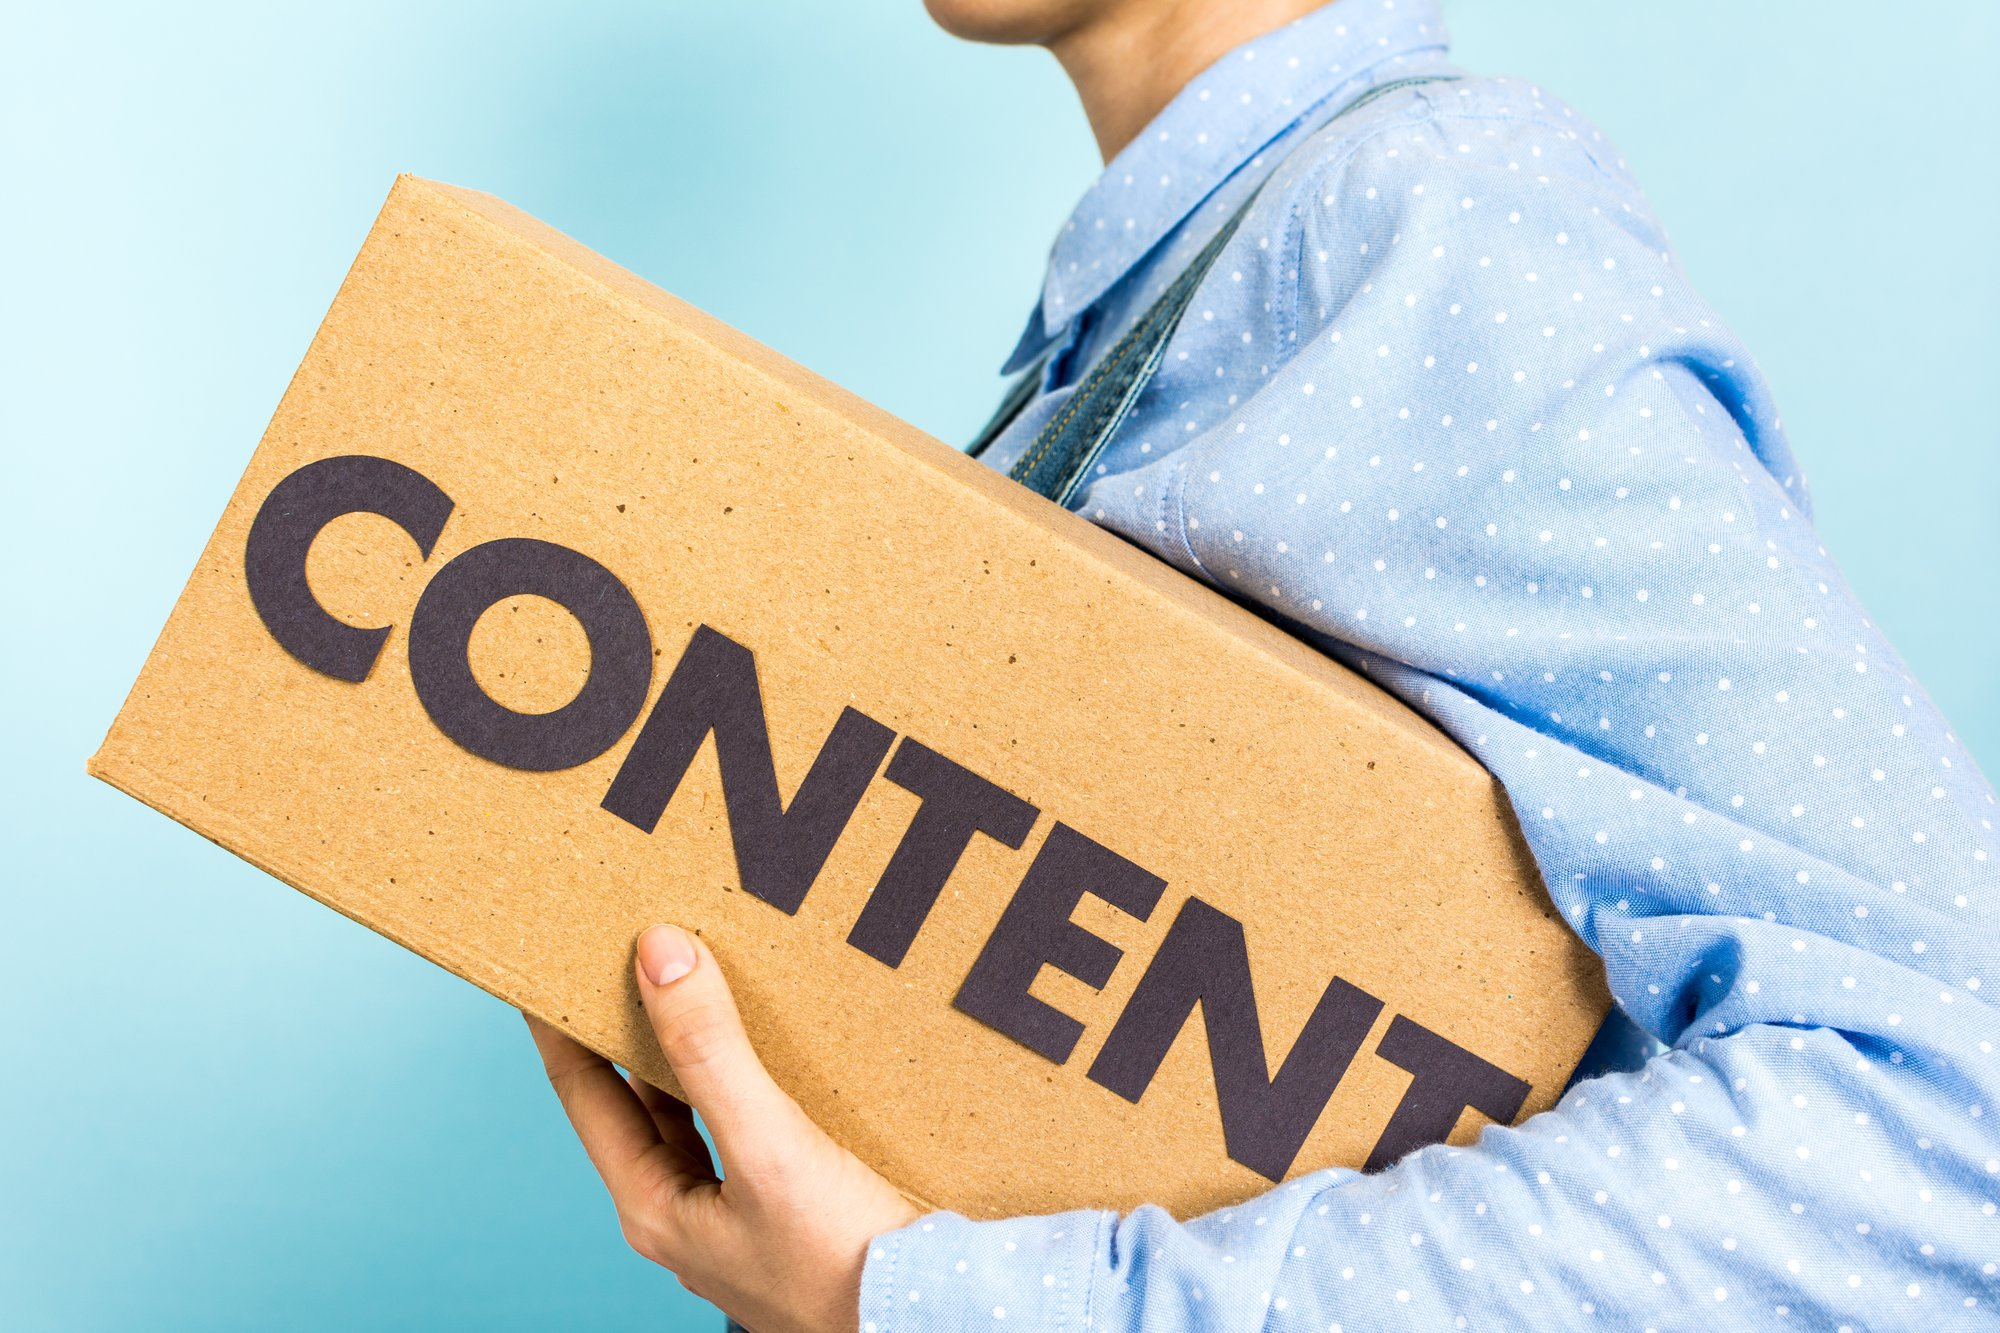 hyper personalized content